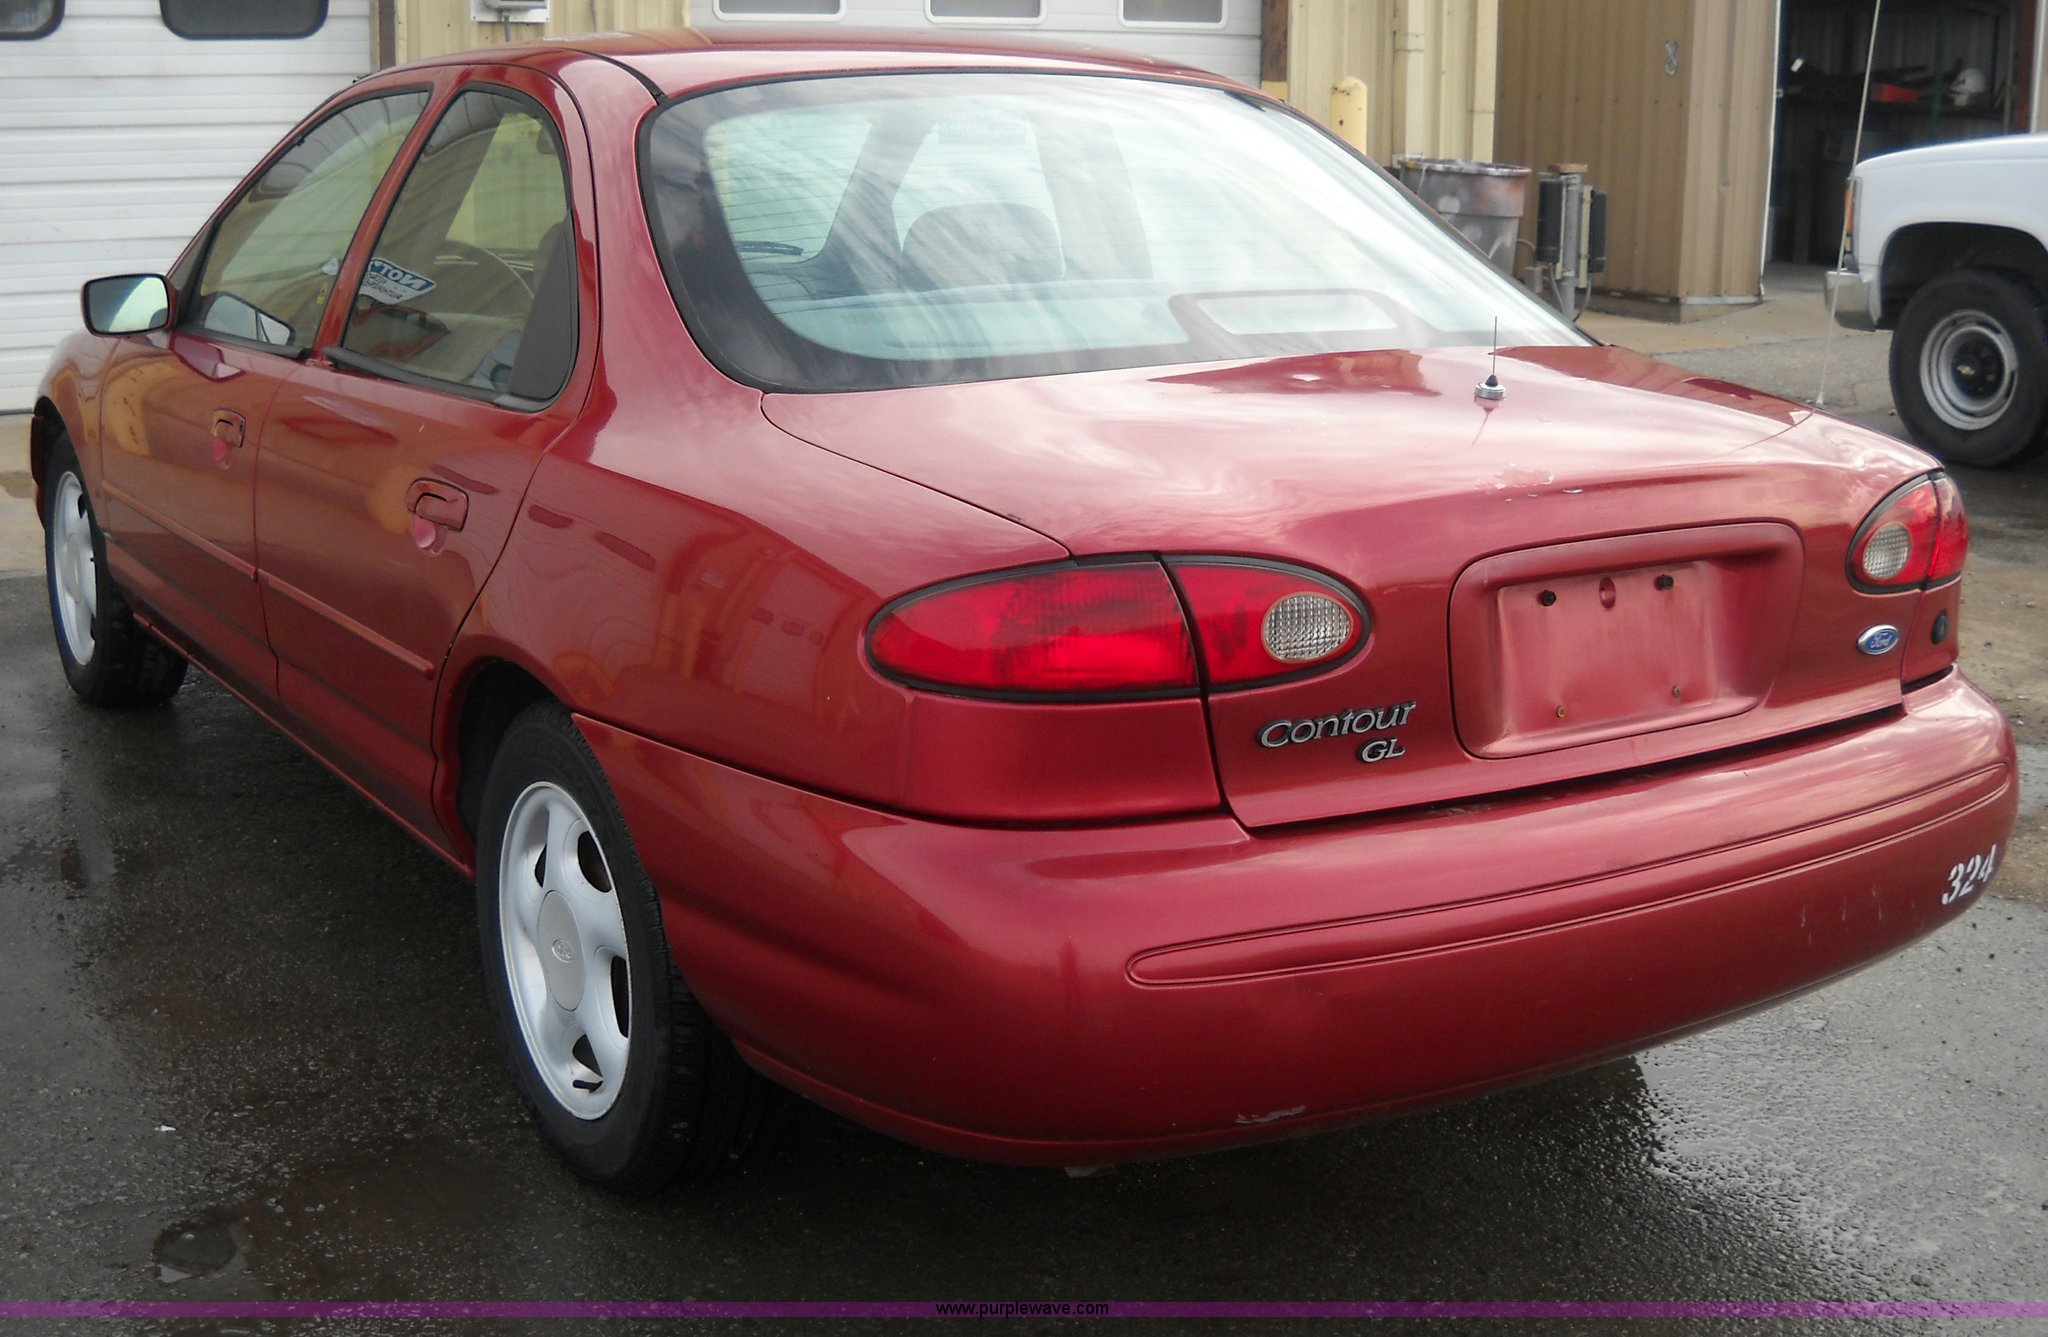 1996 ford contour gl in topeka ks item a1844 sold purple wave 1996 ford contour gl in topeka ks